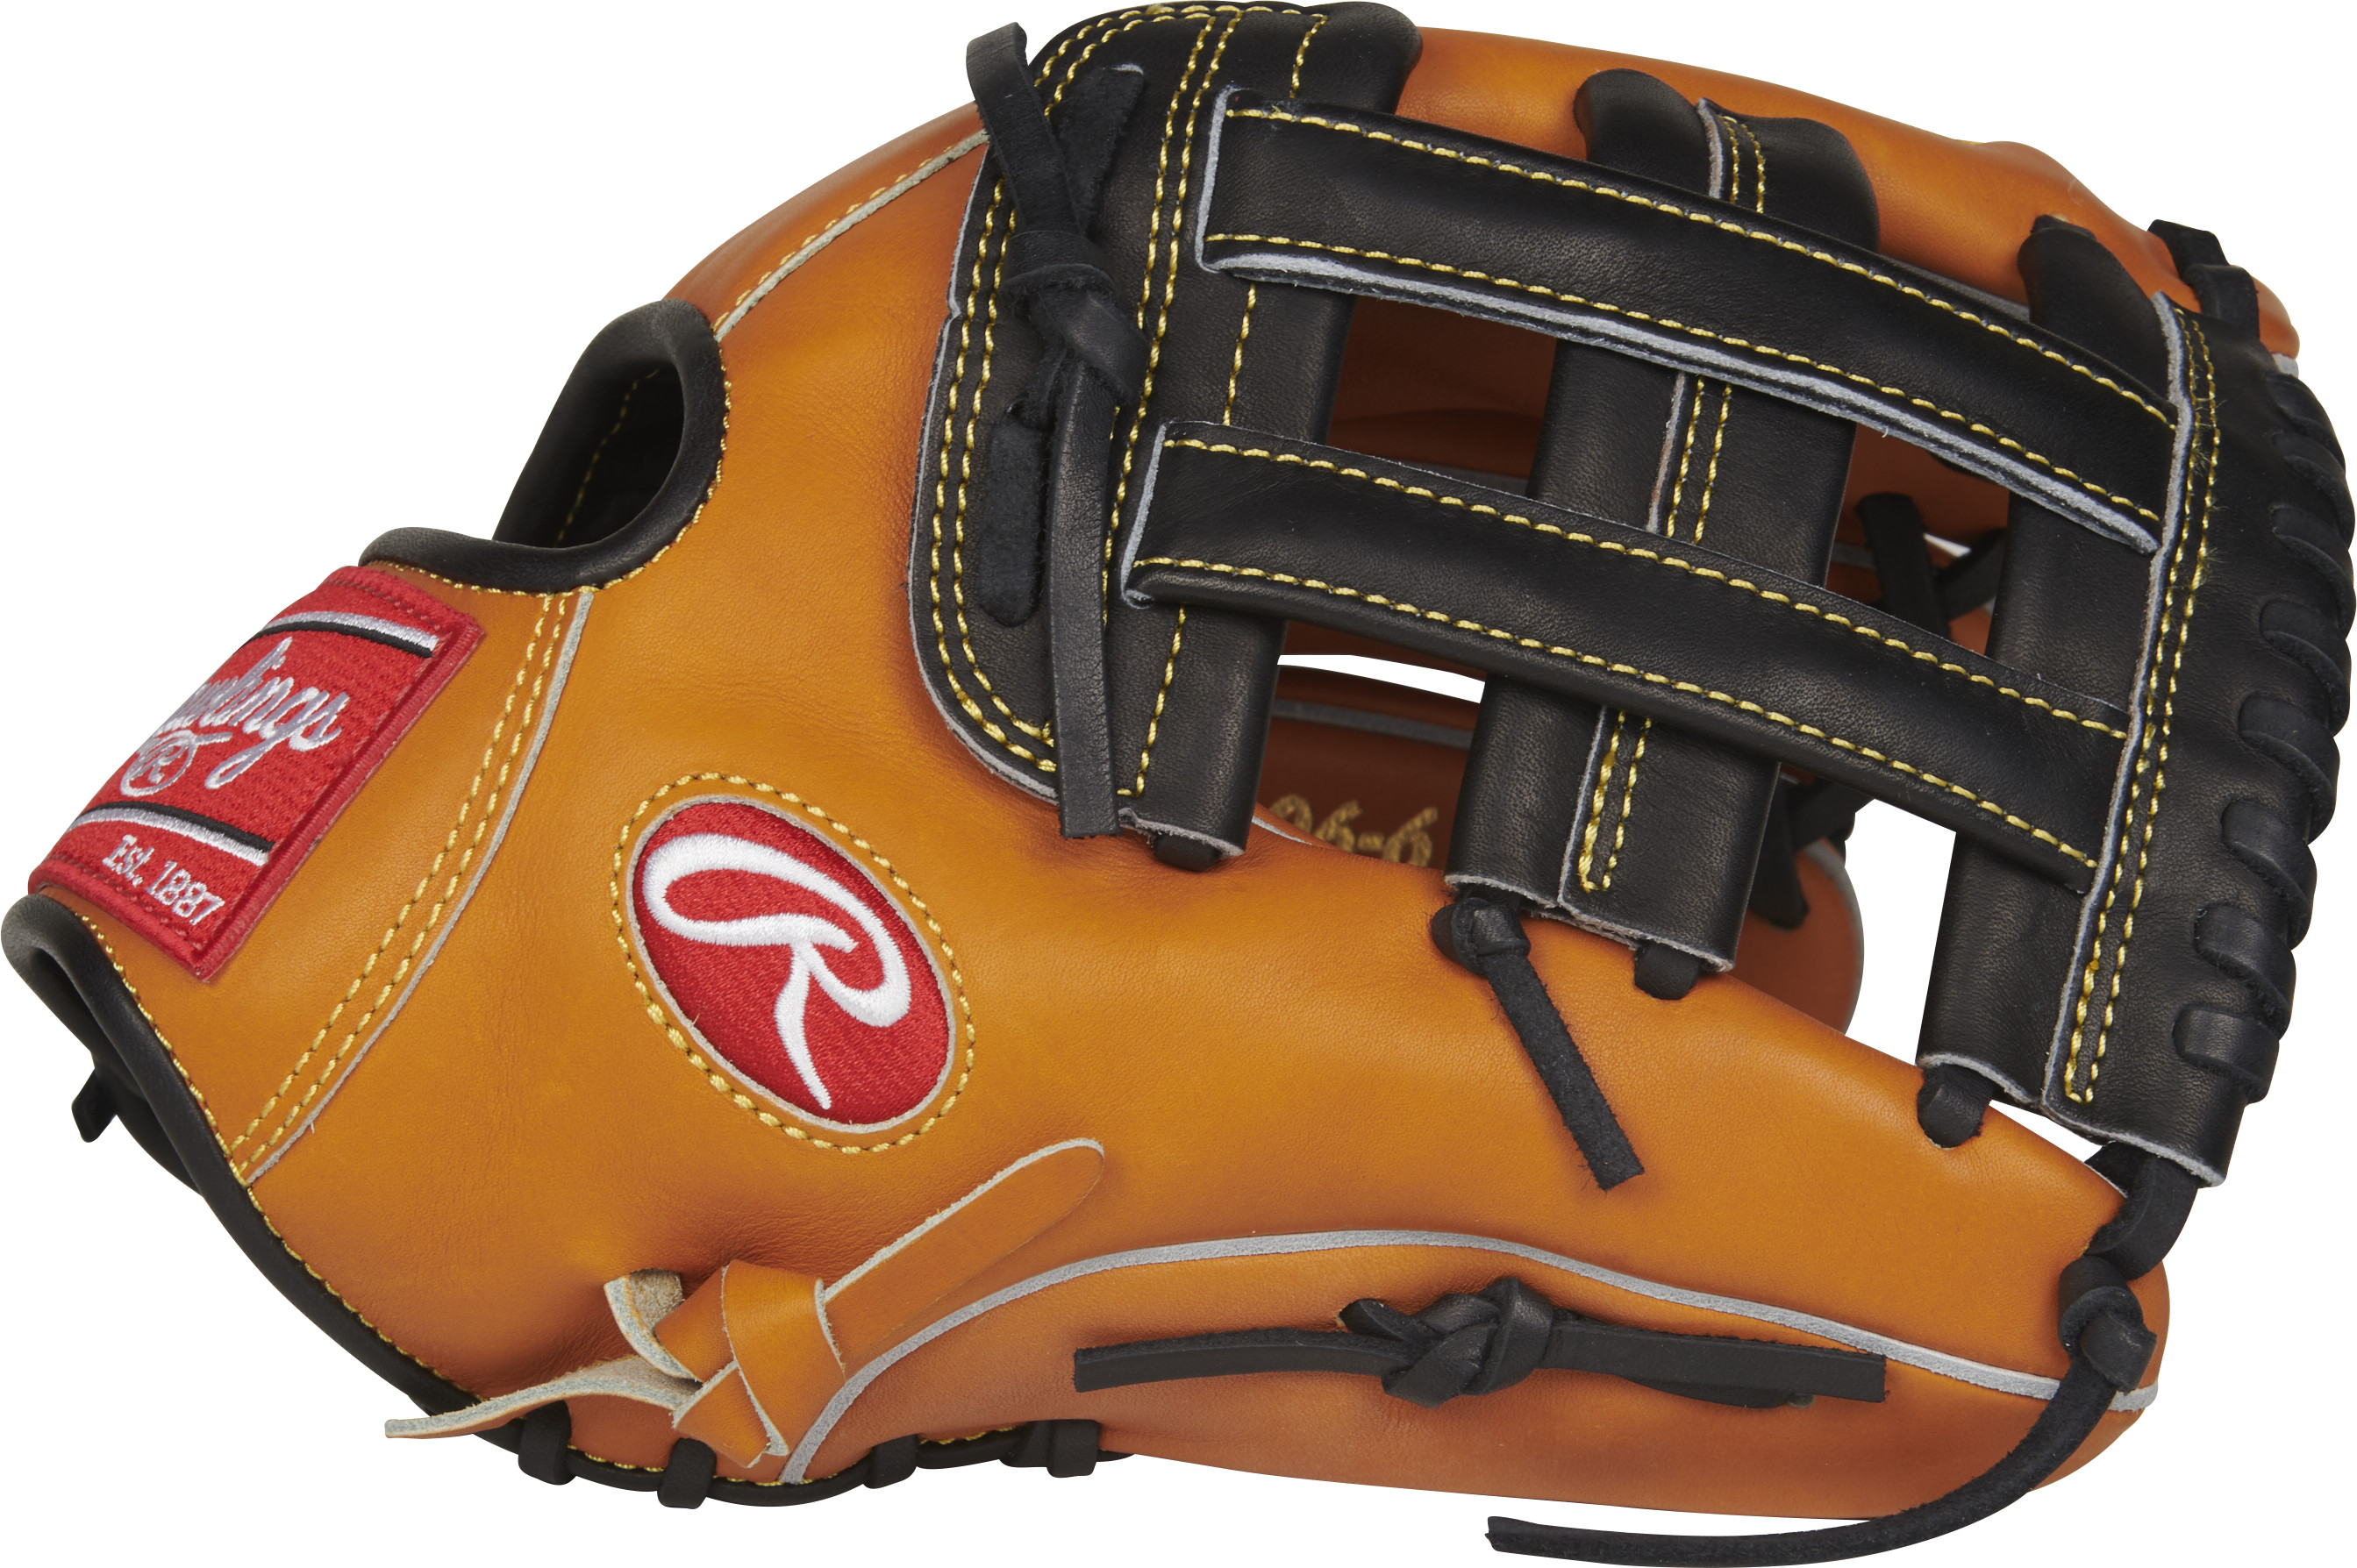 http://www.bestbatdeals.com/images/gloves/rawlings/PRO206-6JTB-3.jpg